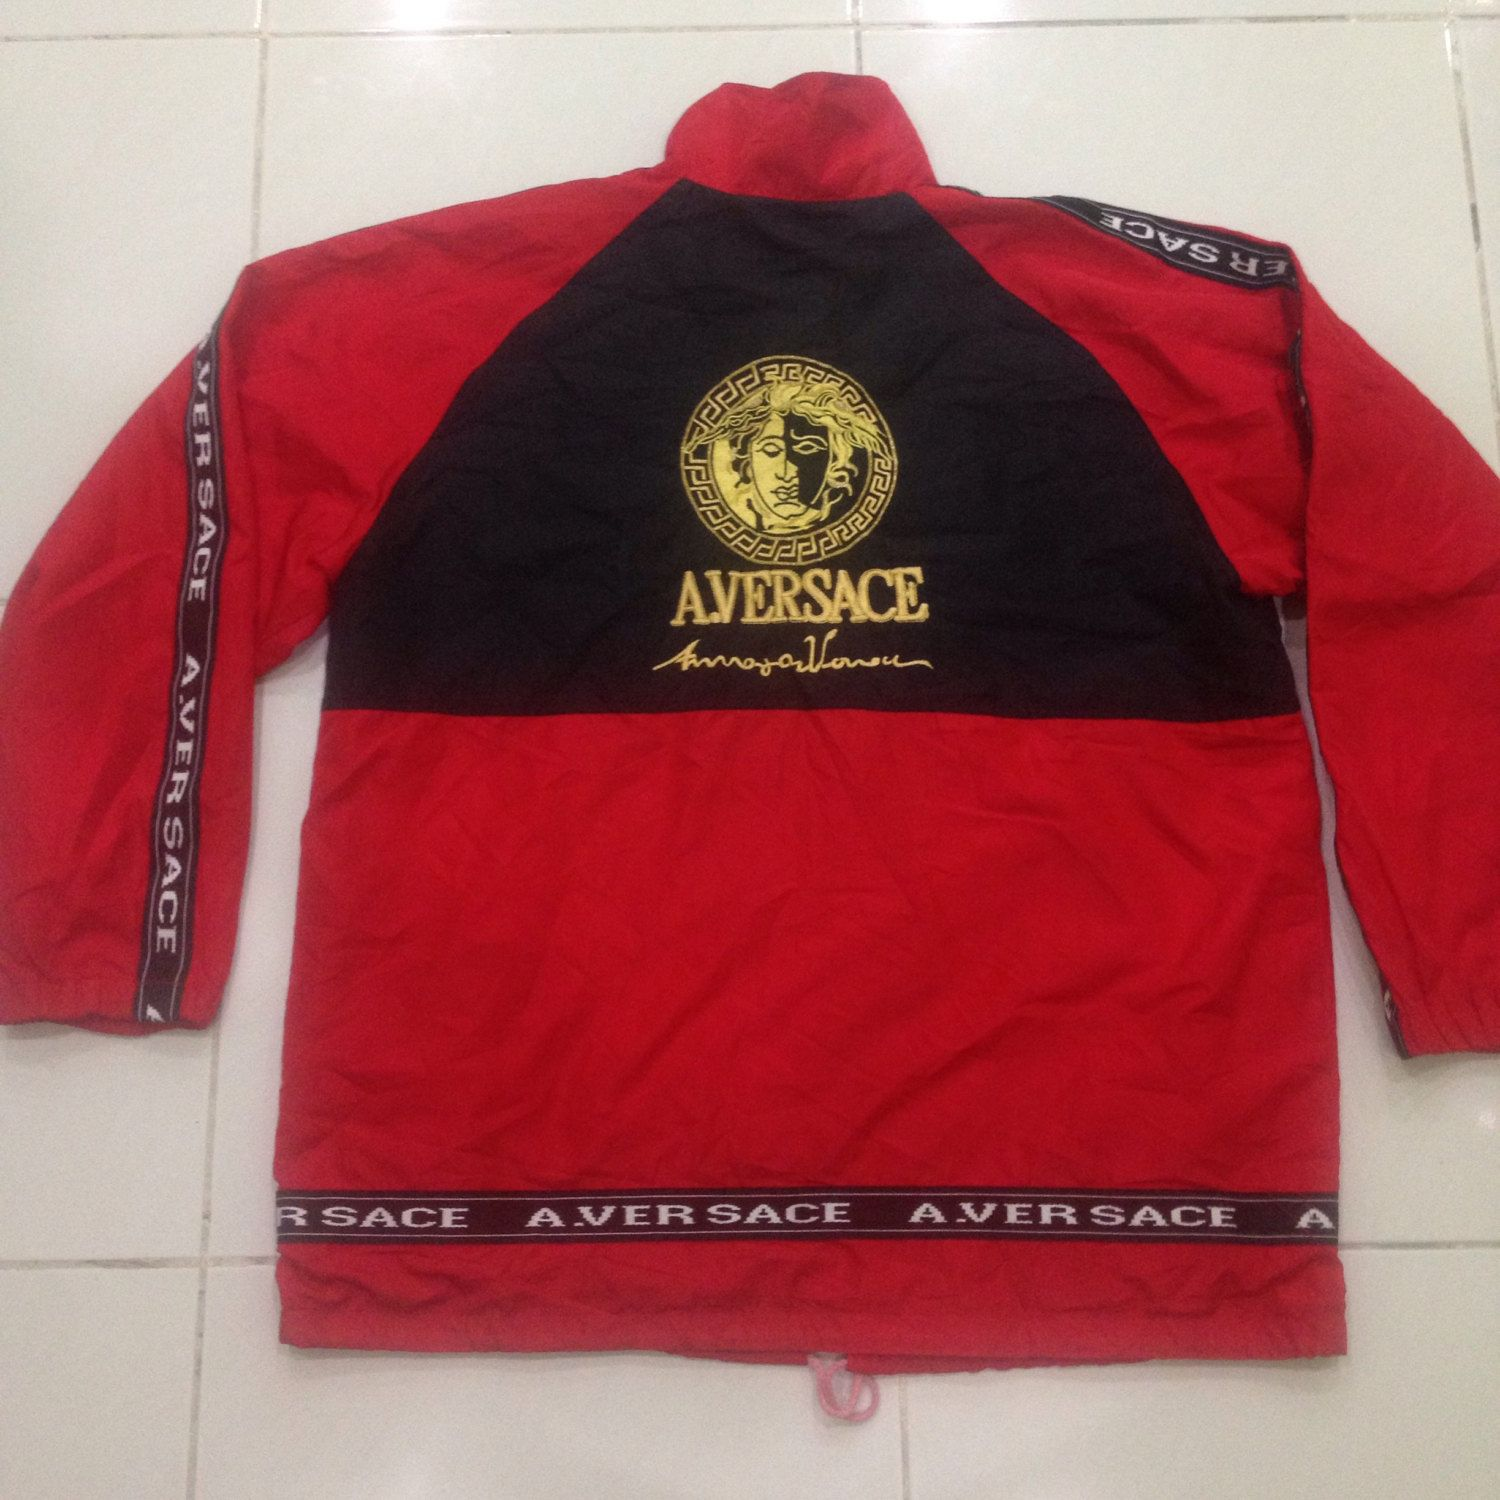 Red And Black Versace Shirt